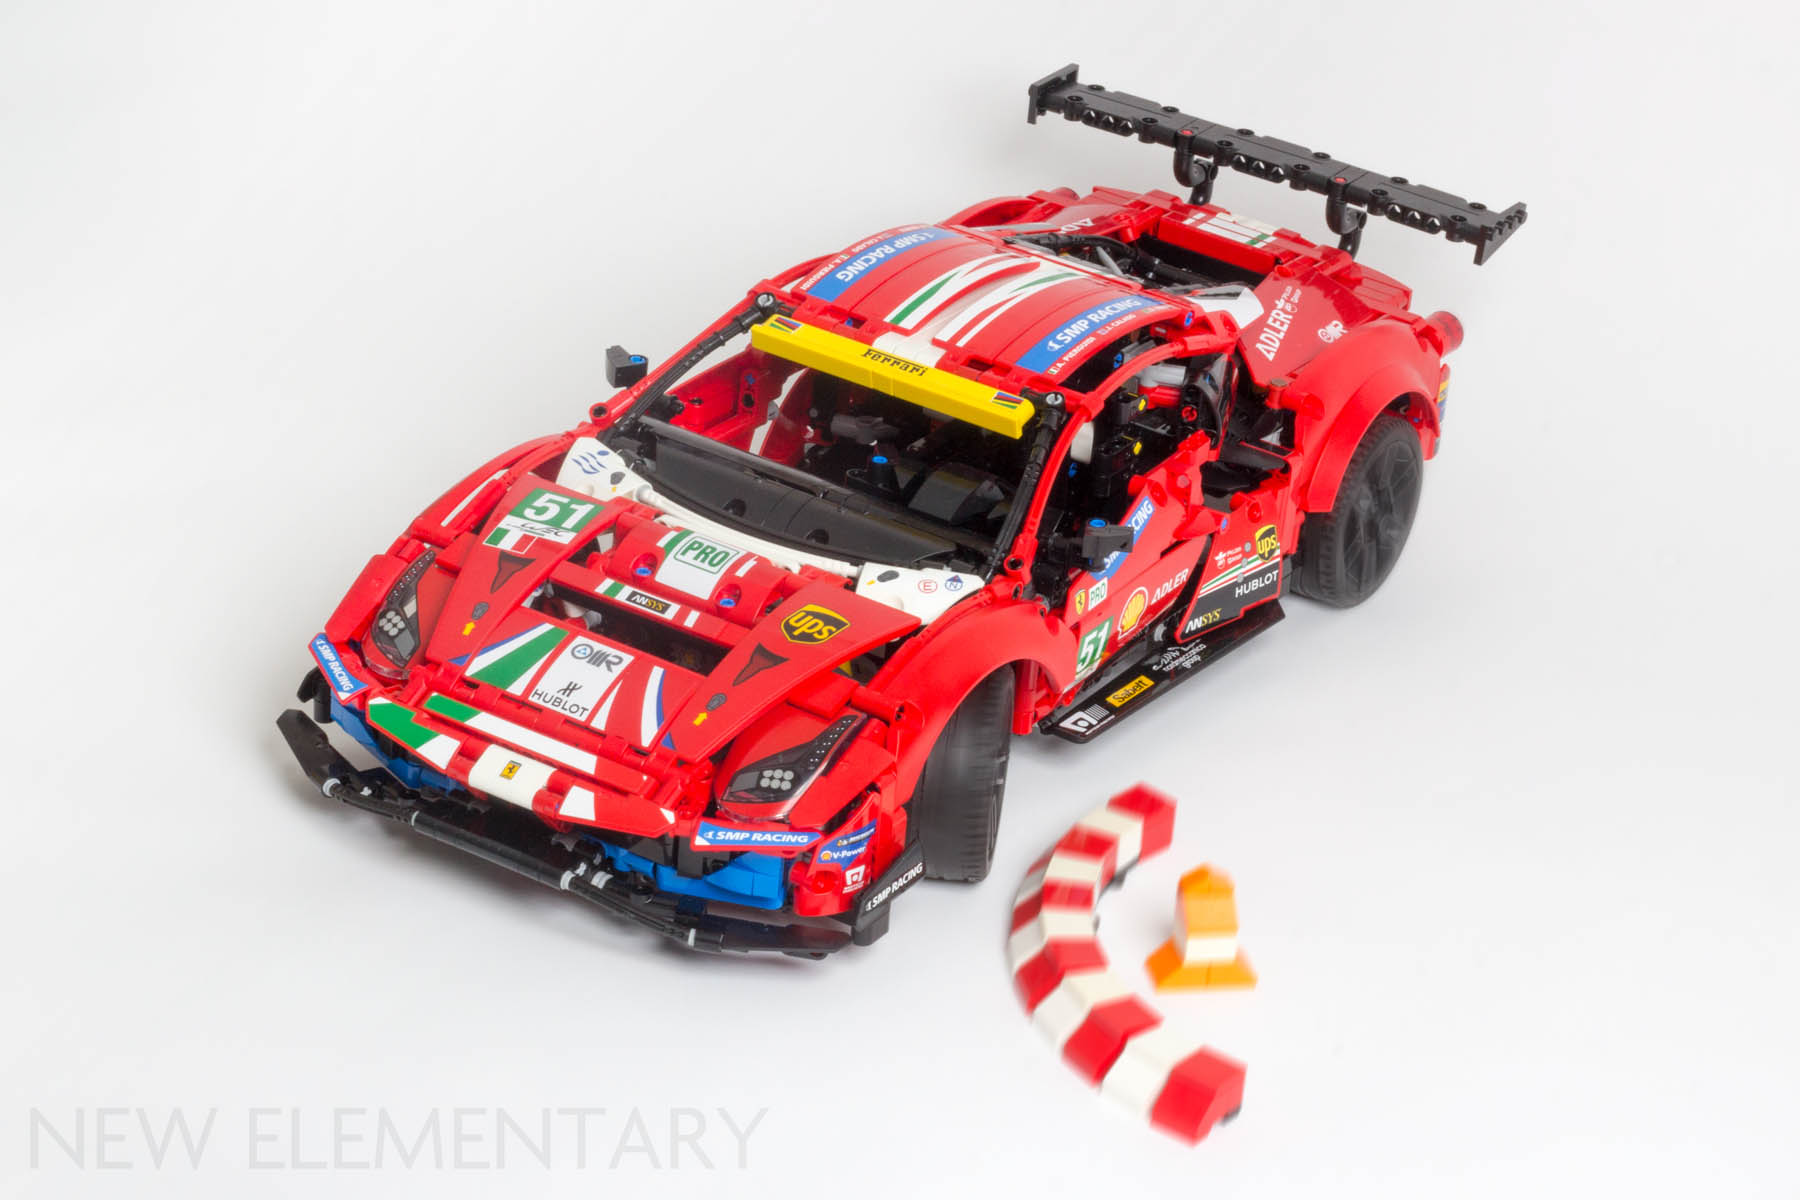 Lego Technic Review 42125 Ferrari 488 Gte Af Corse 51 New Elementary Lego Parts Sets And Techniques